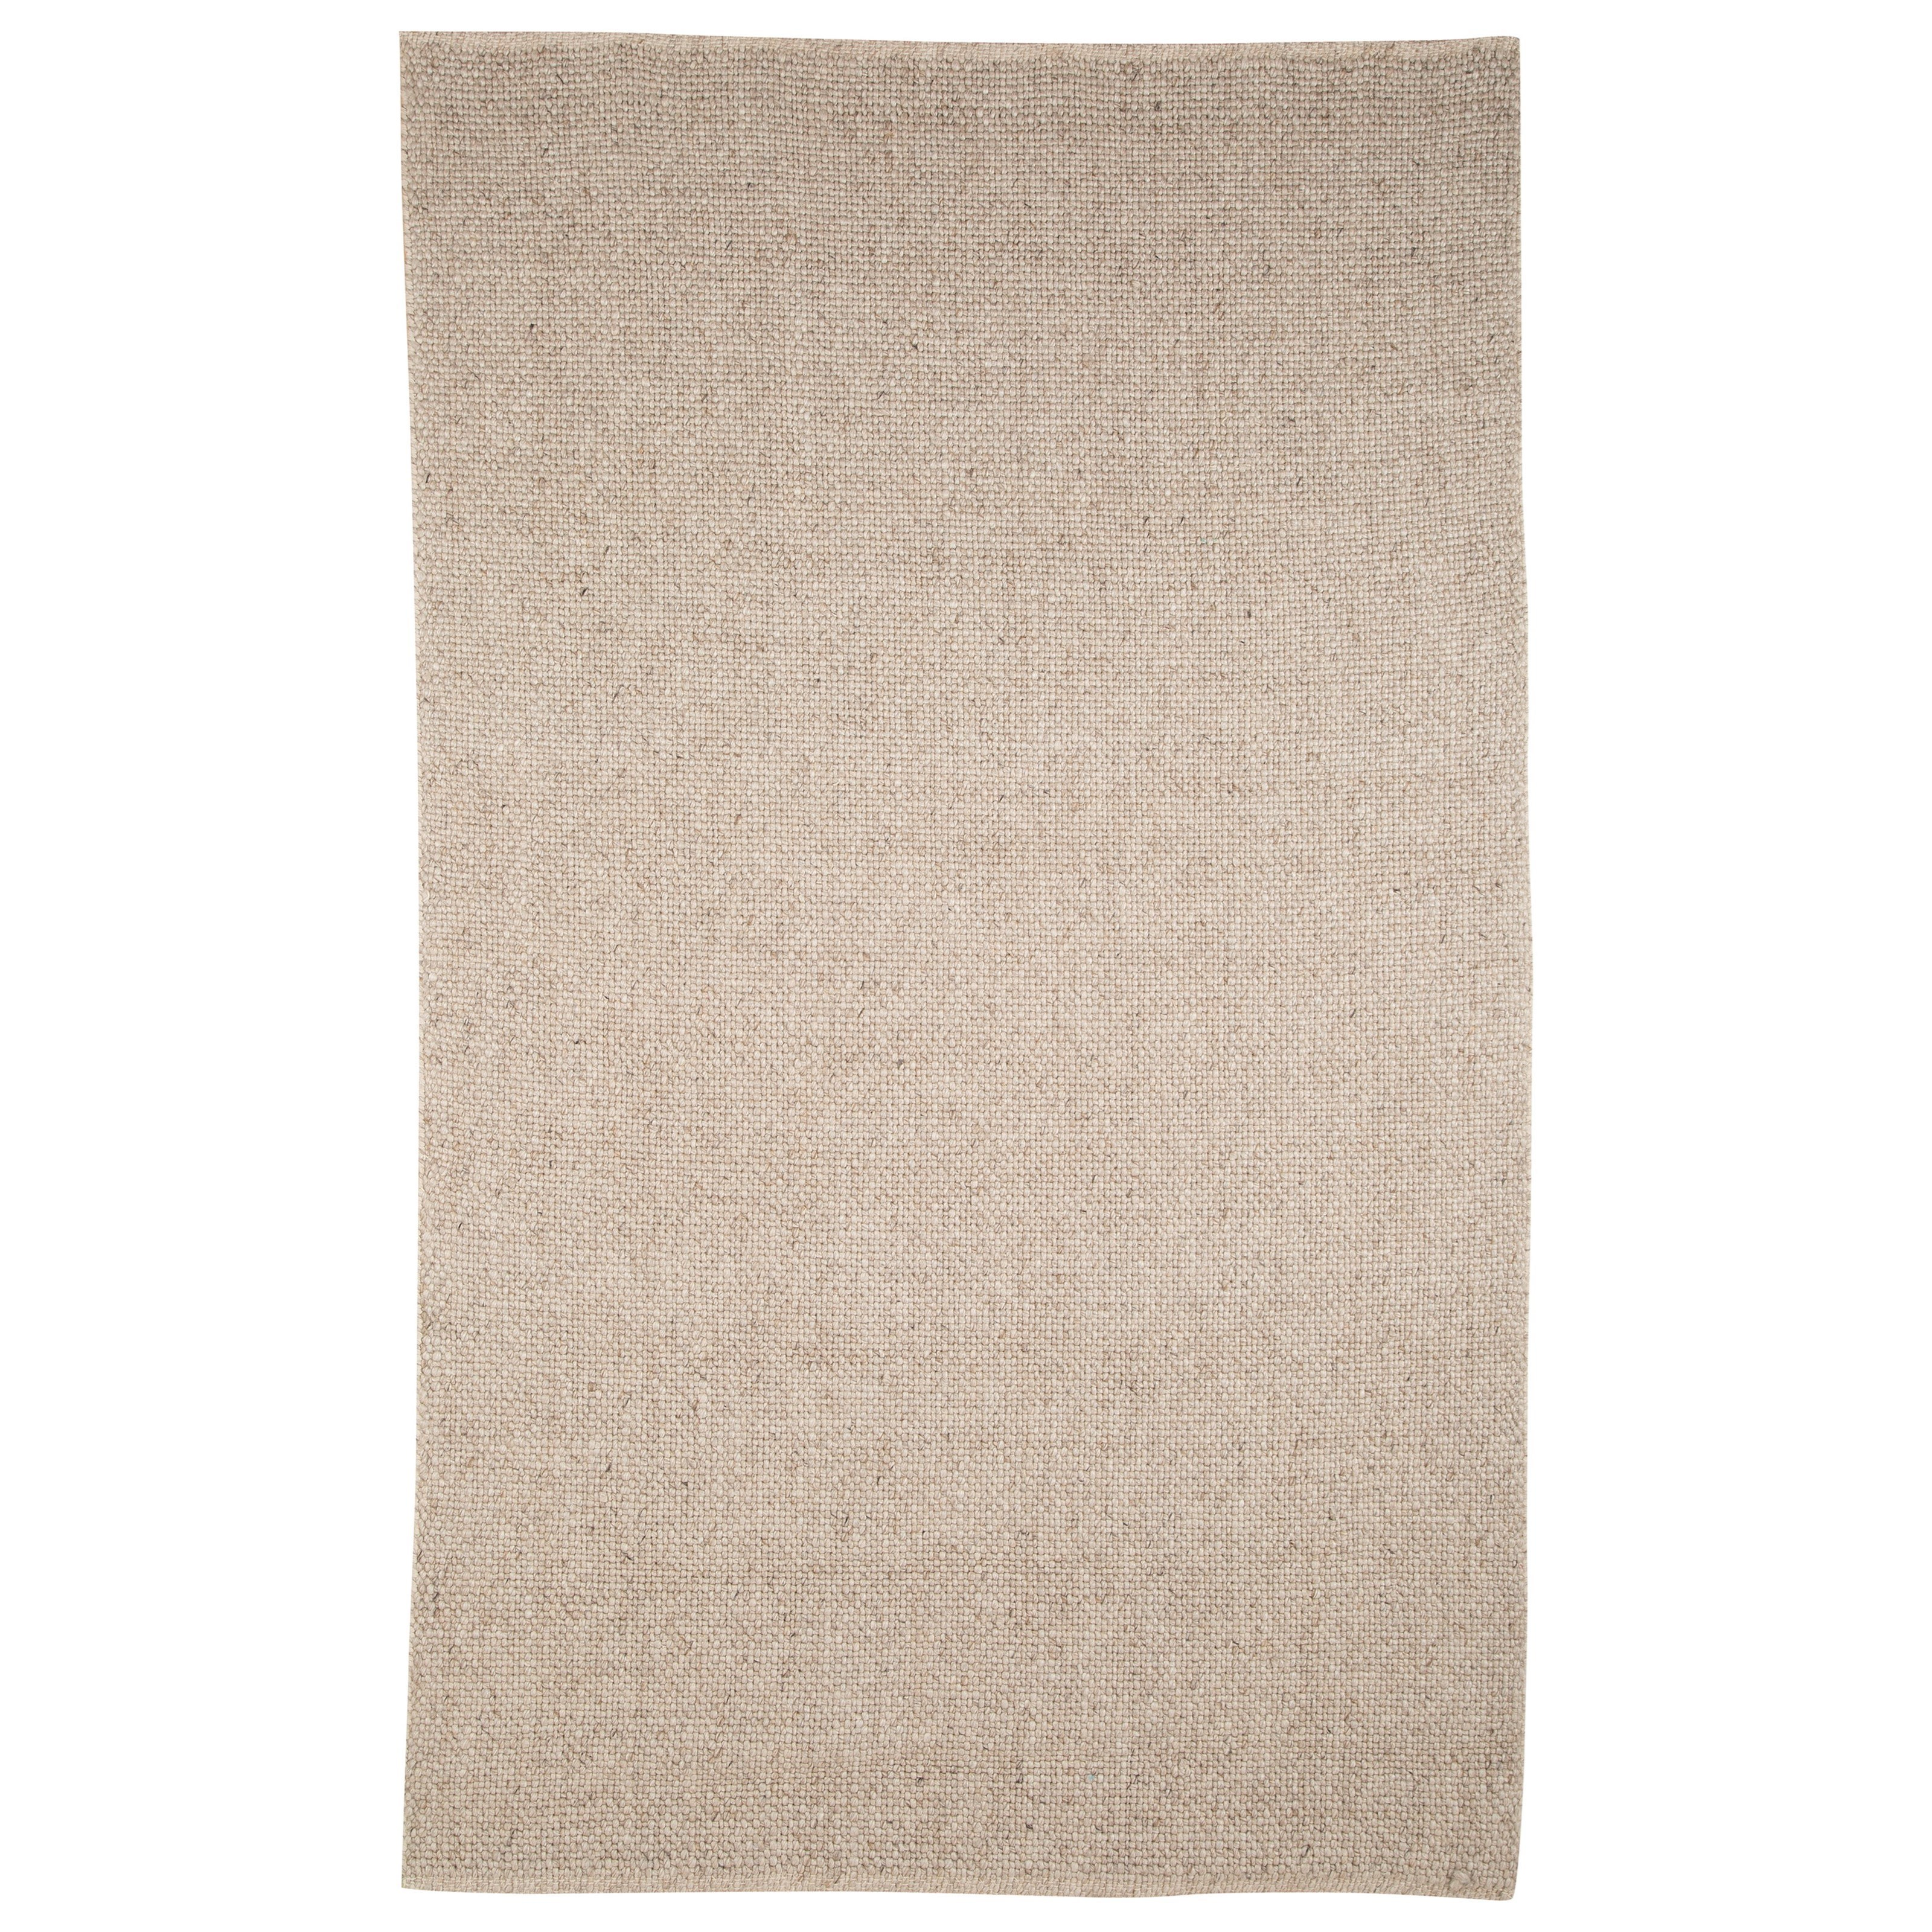 Signature Design by Ashley Casual Area Rugs Conly Brown